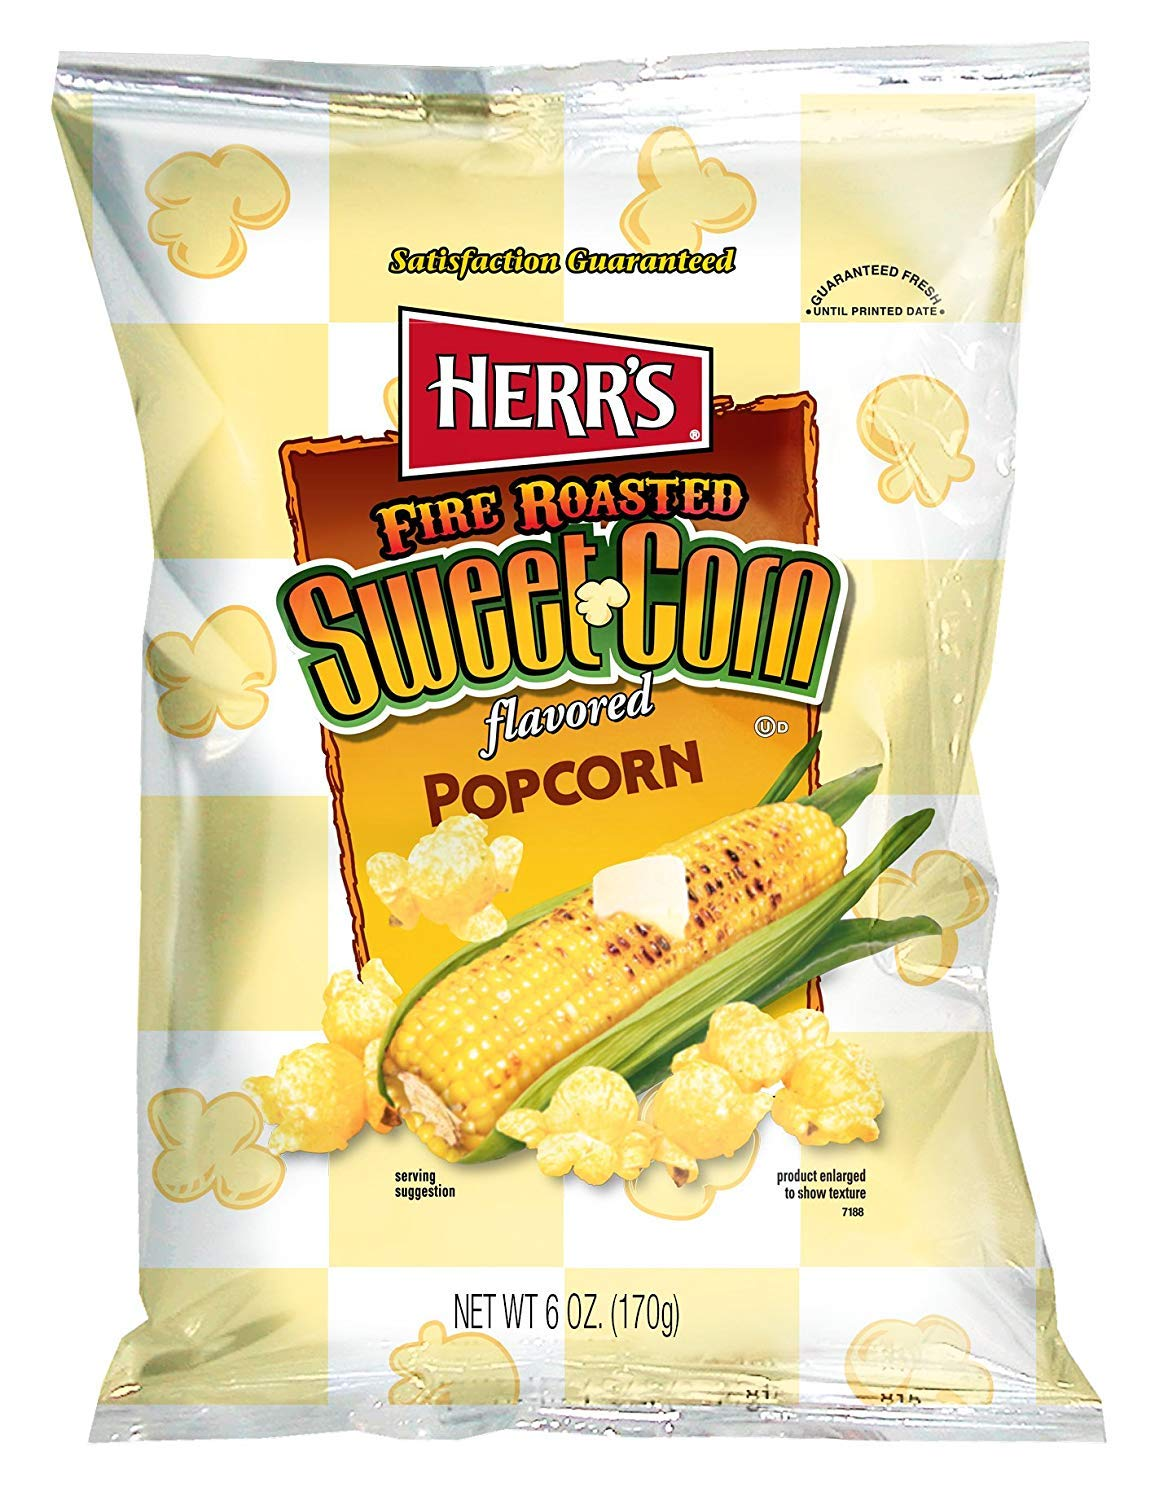 Herr's Fire Roasted Sweet Corn Popcorn, 6 Ounce (Pack of 9) (2 Pack (Pack of 9)) by Herr's